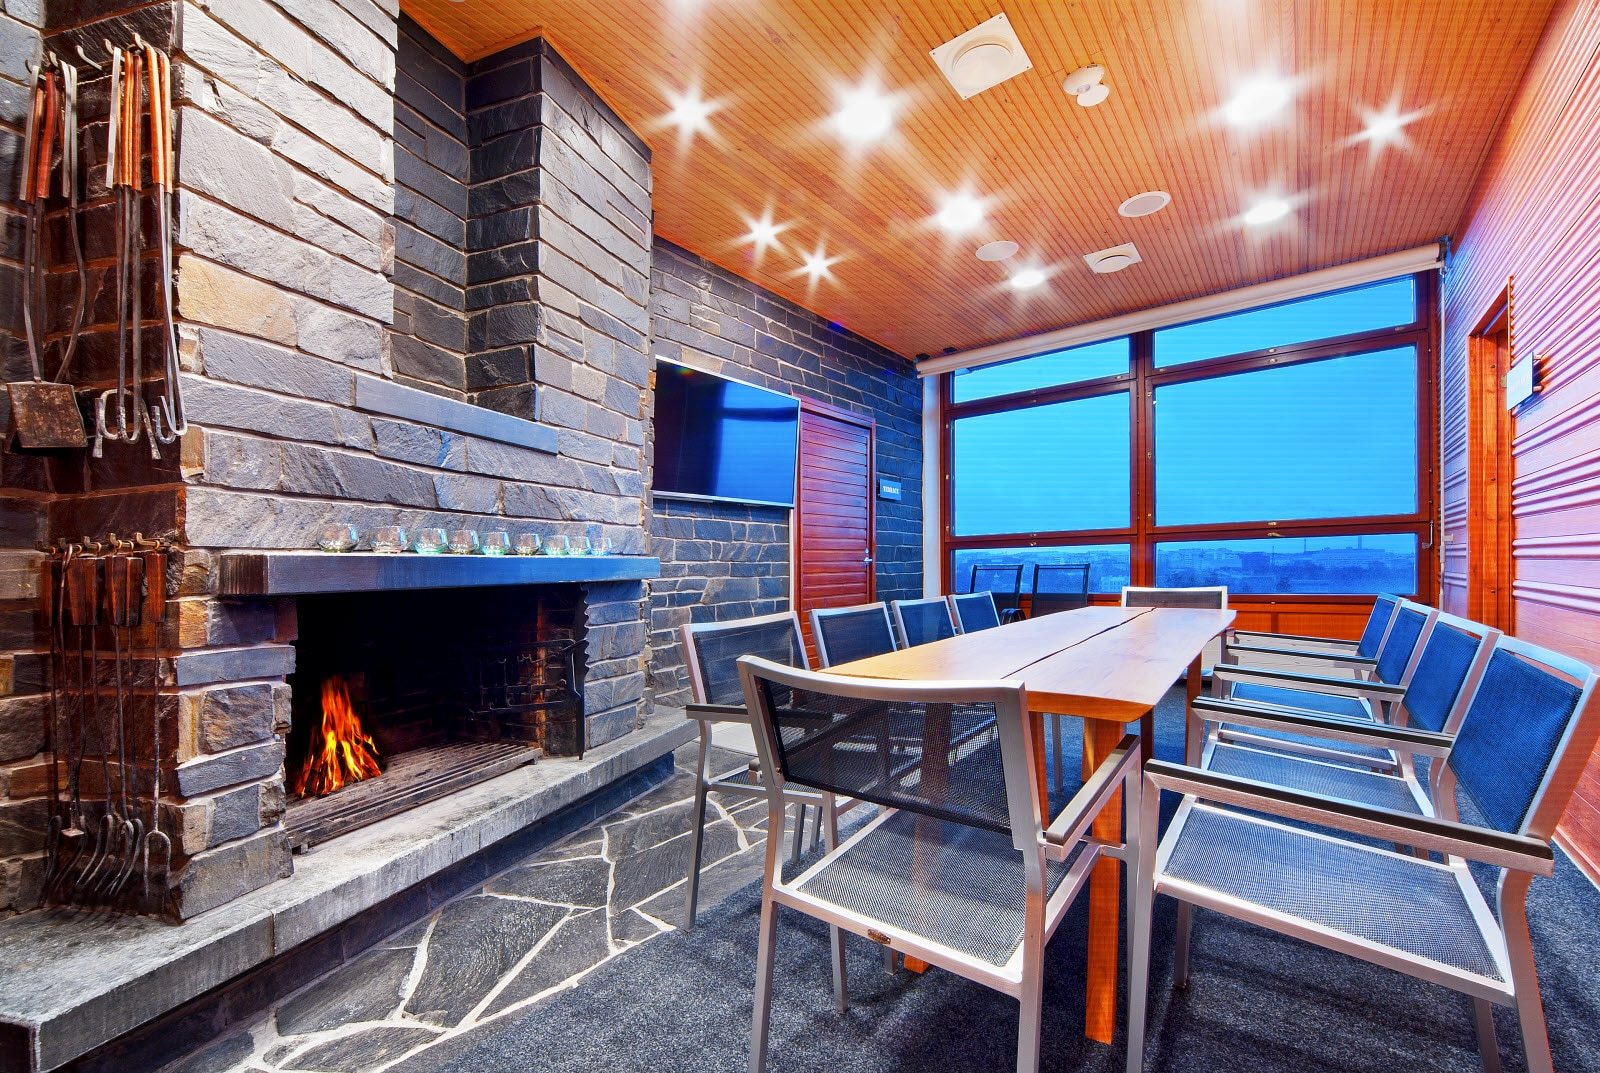 Sauna, fireplace